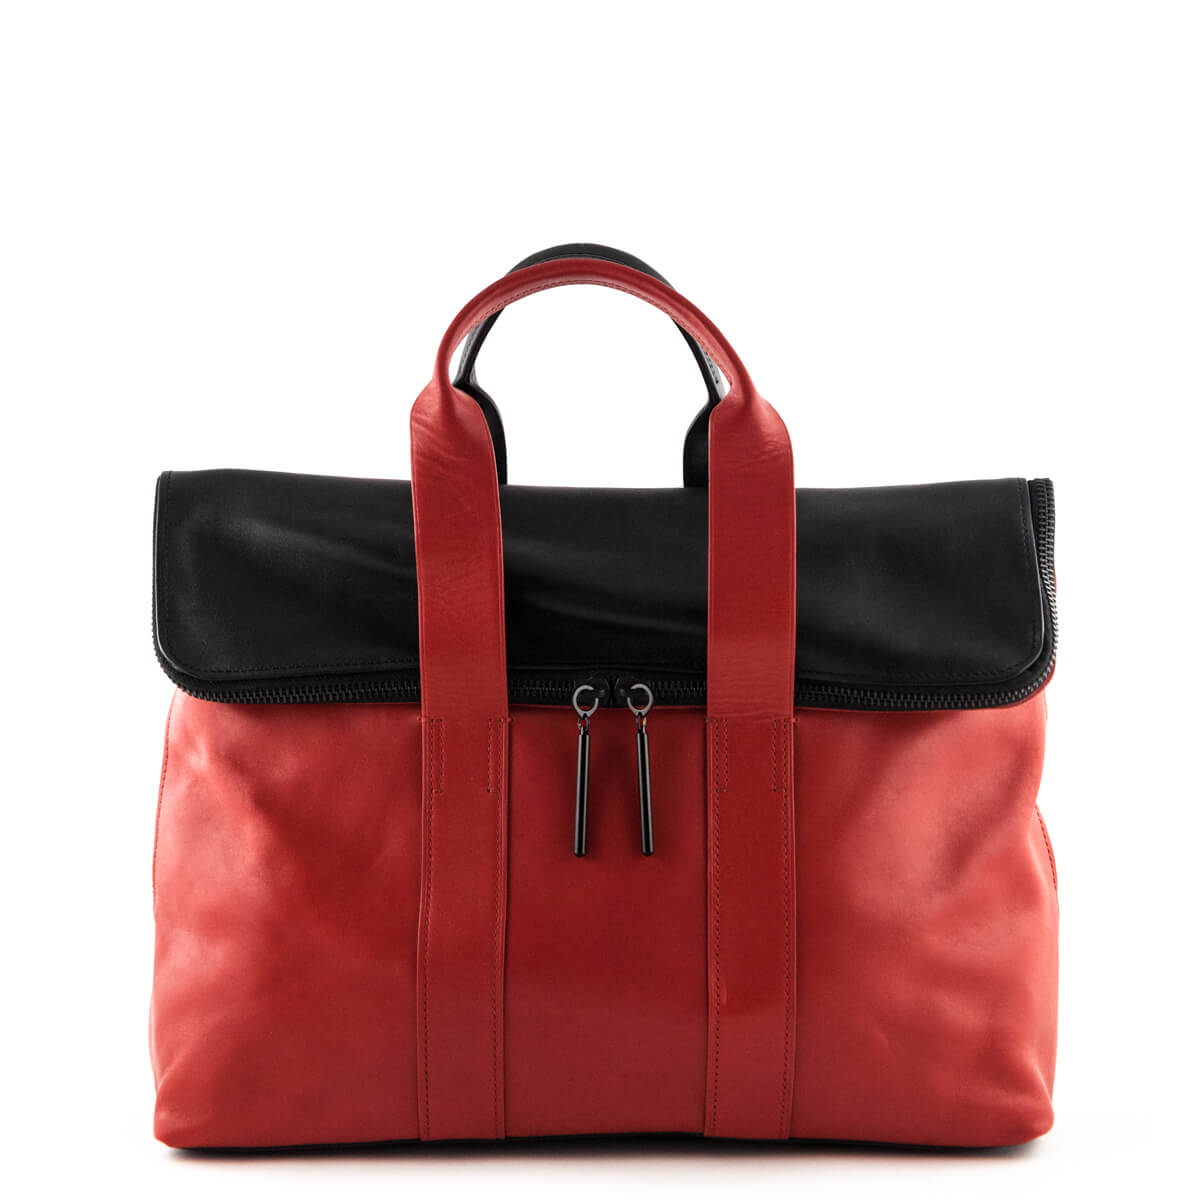 dc6860475dd6 3.1 Phillip Lim Red & Black 31 Hour Tote - LOVE that BAG - Preowned  Authentic ...